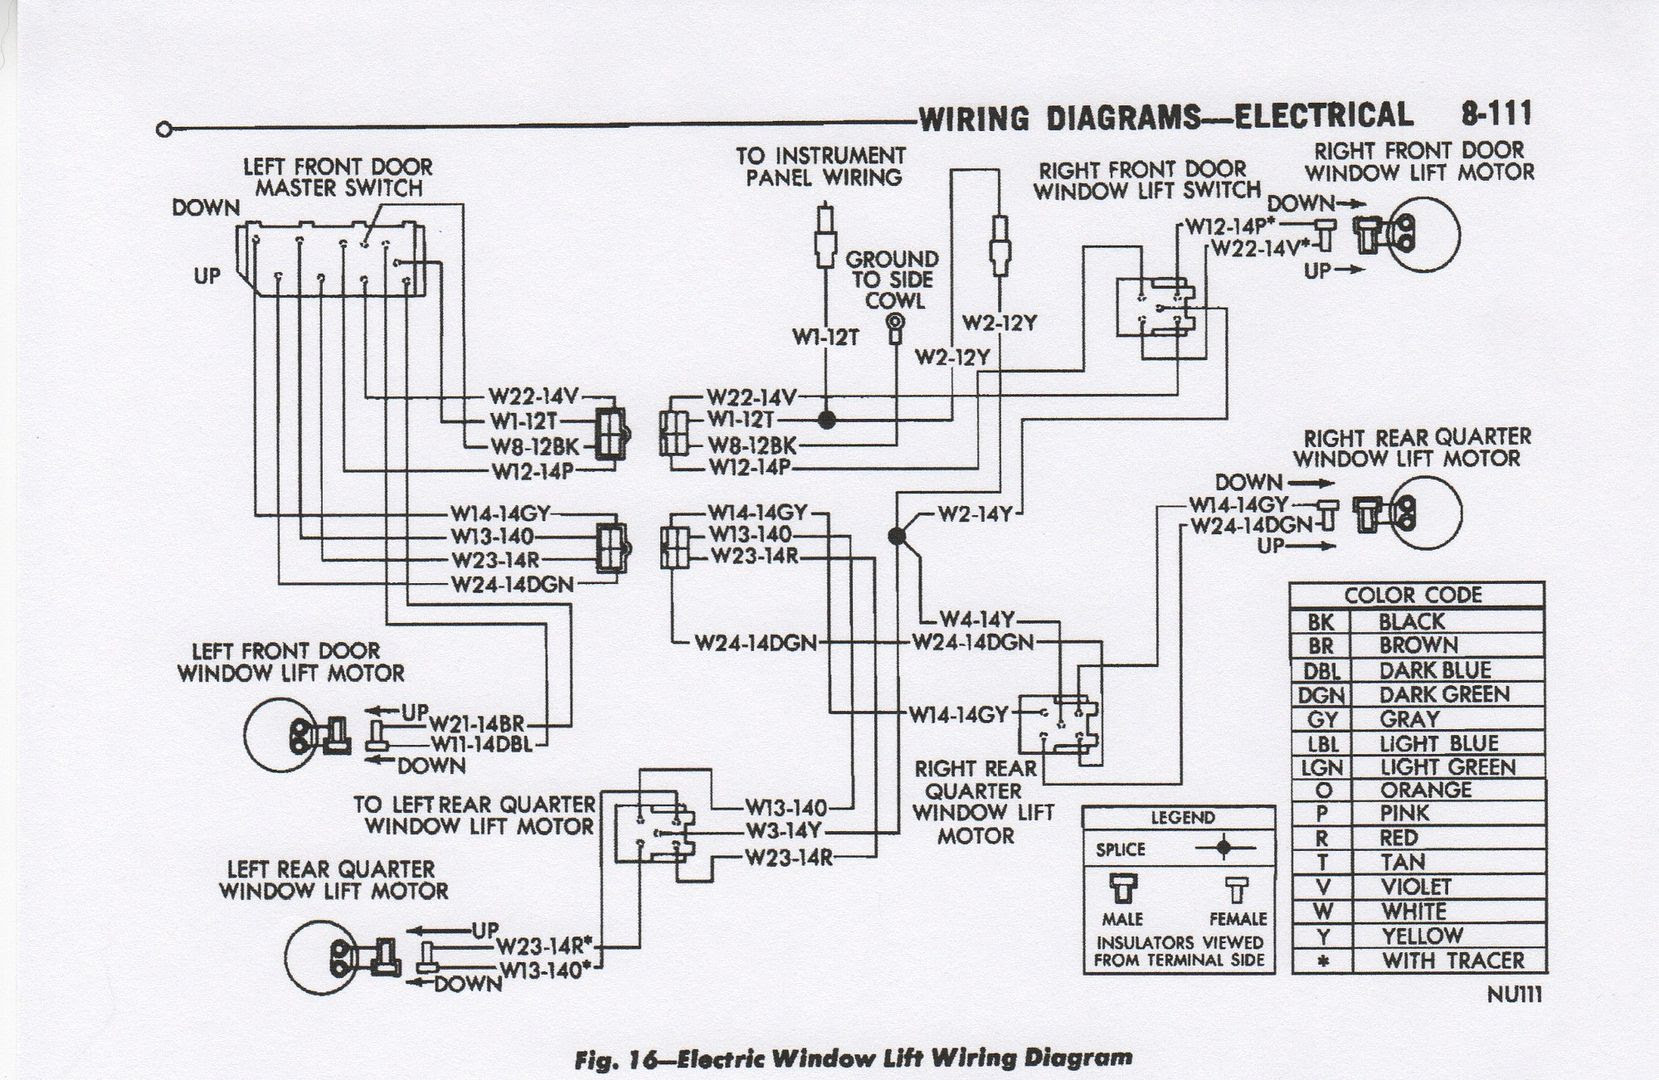 Diagram Headlight Switch Wiring Diagram 73 Charger Full Version Hd Quality 73 Charger Tschematicl Echolink Italia It